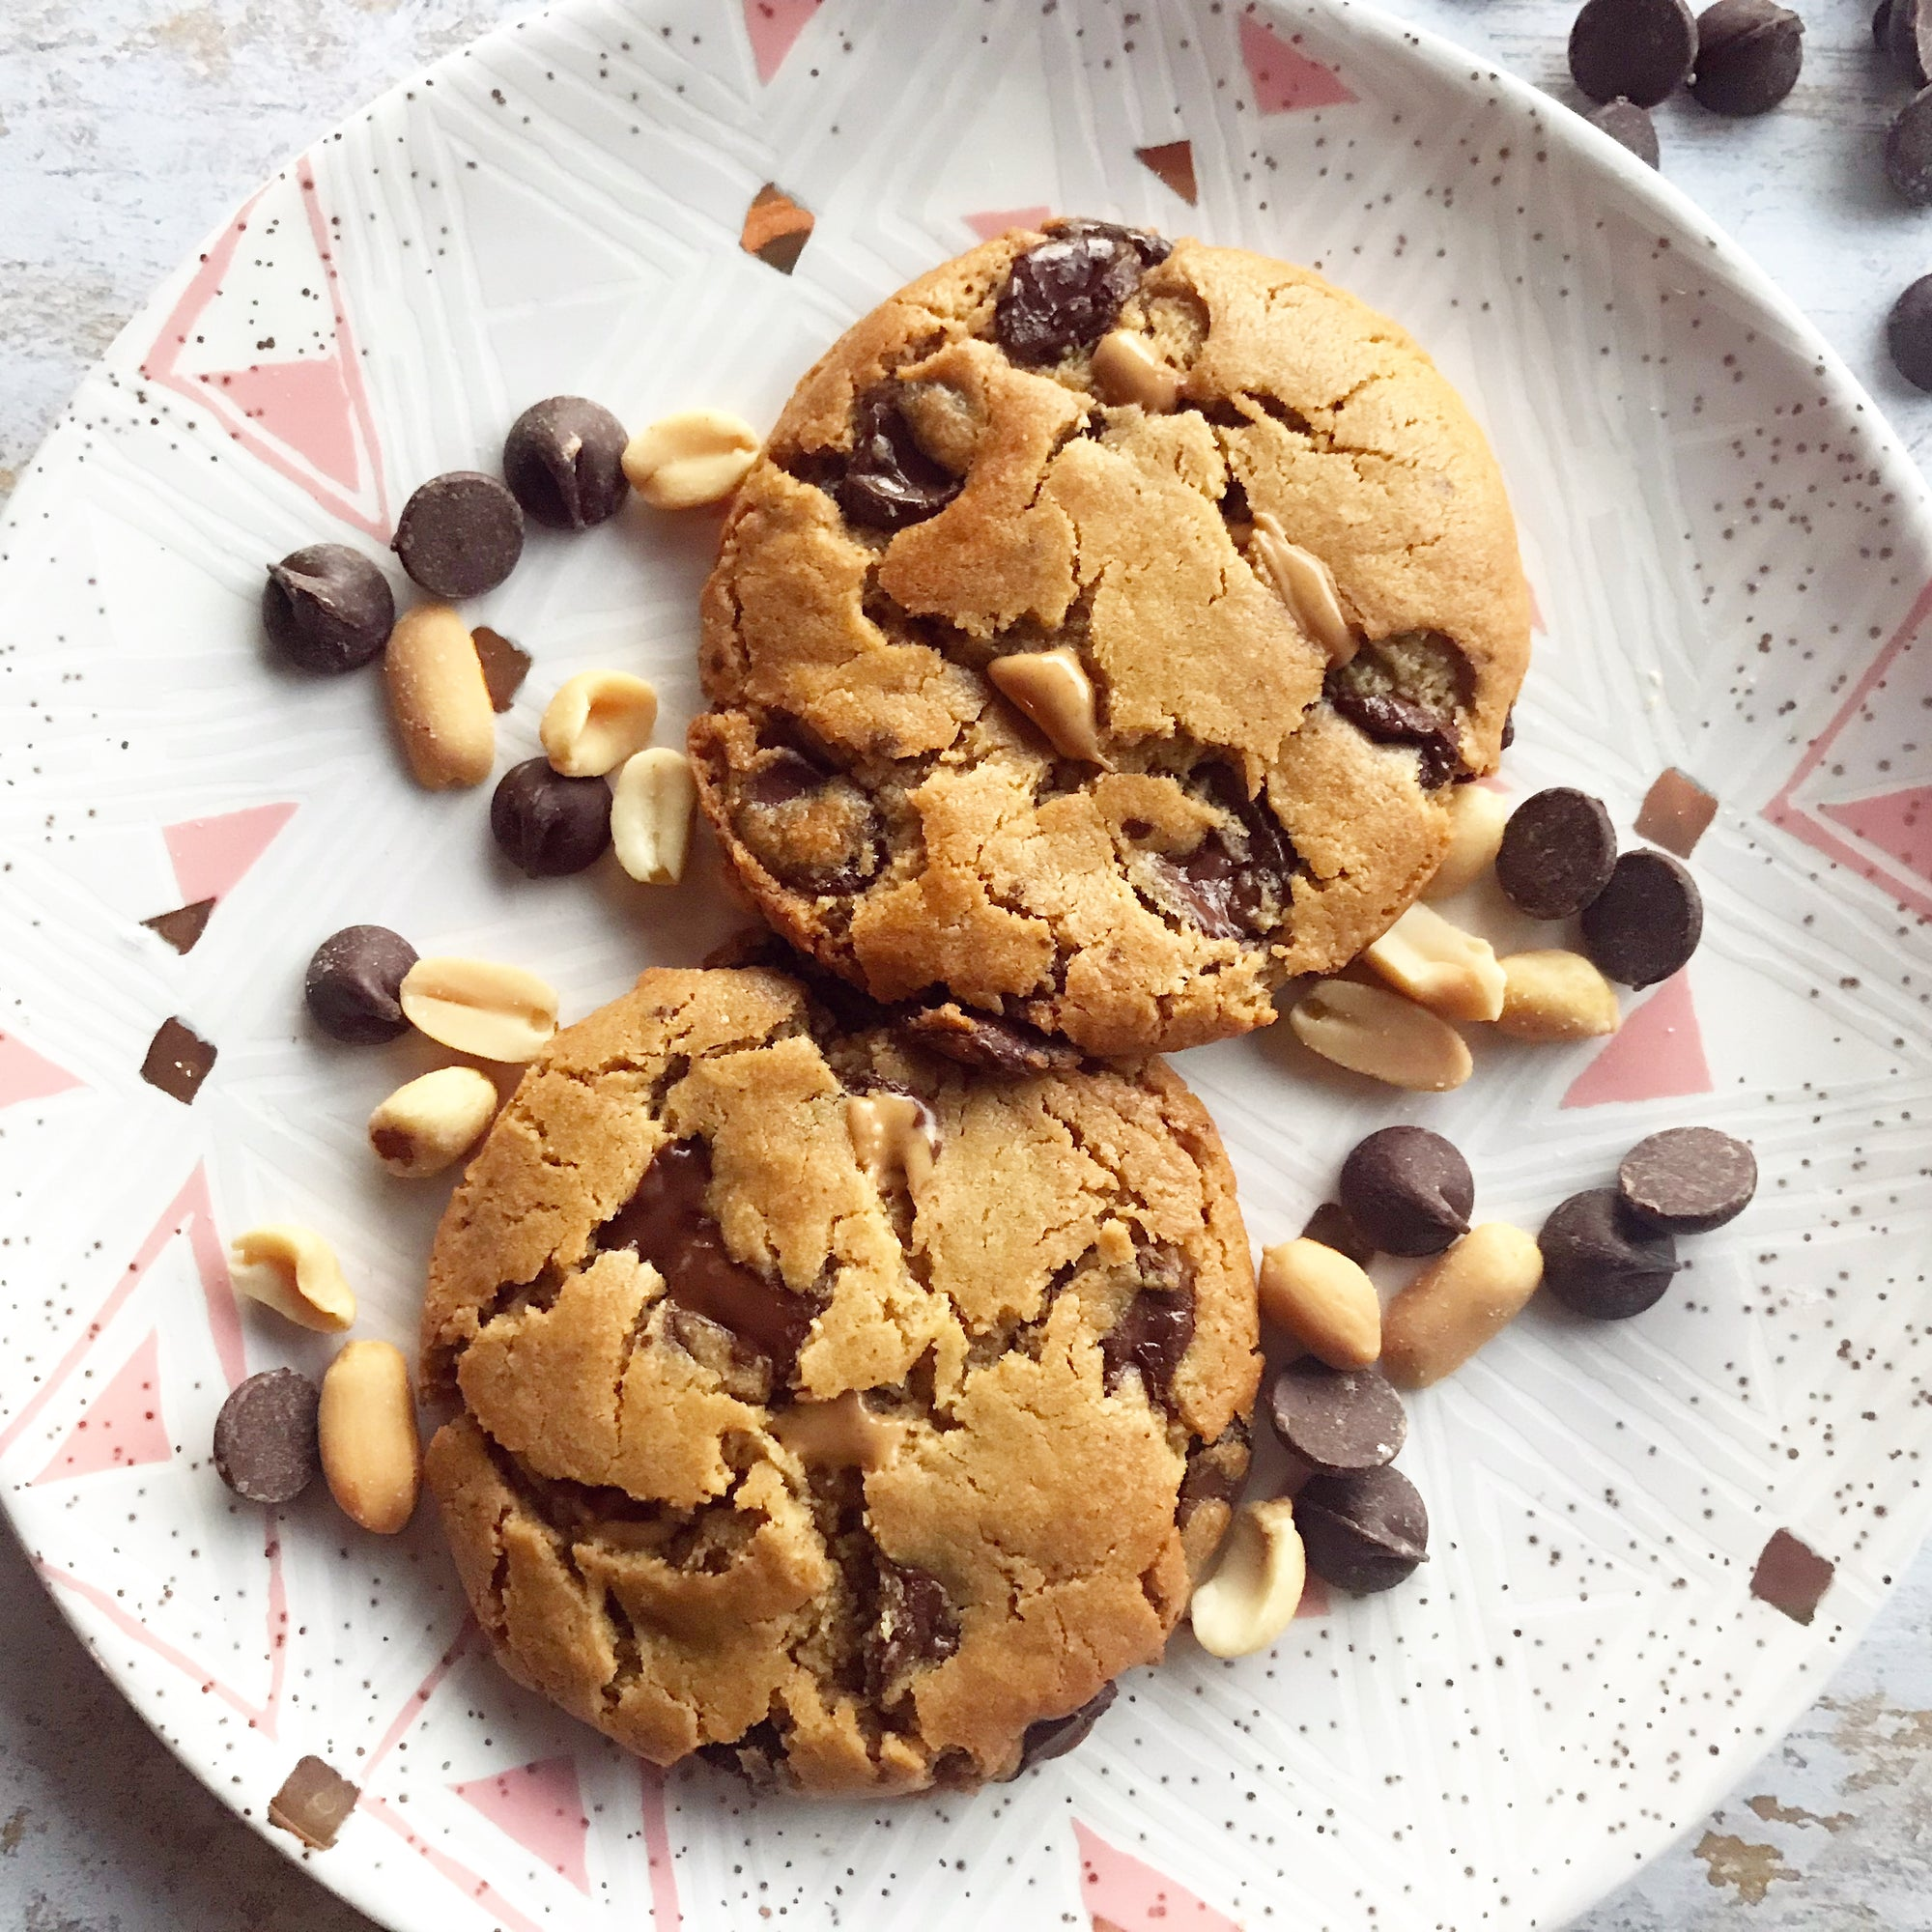 The Naughty Cookie Vegan Peanut Butter Chocolate Chip cookies. Consists of Organic Peanut Butter and Chocolate Chips mixed into The Naughty Cookie signature cookie dough and dusted off with Sea Salt Flakes.